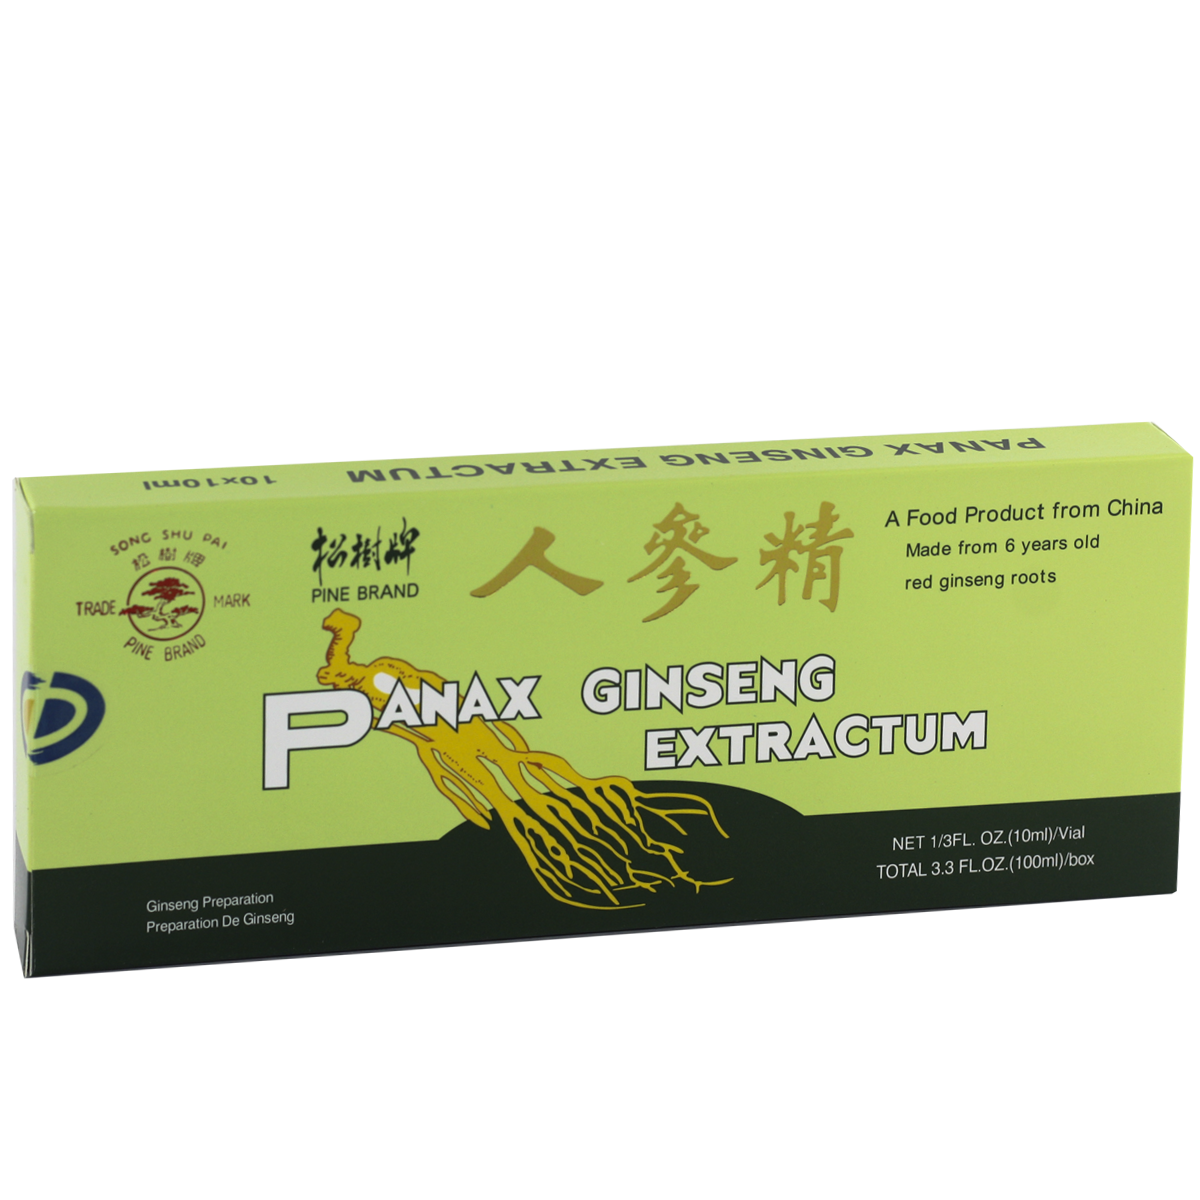 Panax Ginseng Extract Image